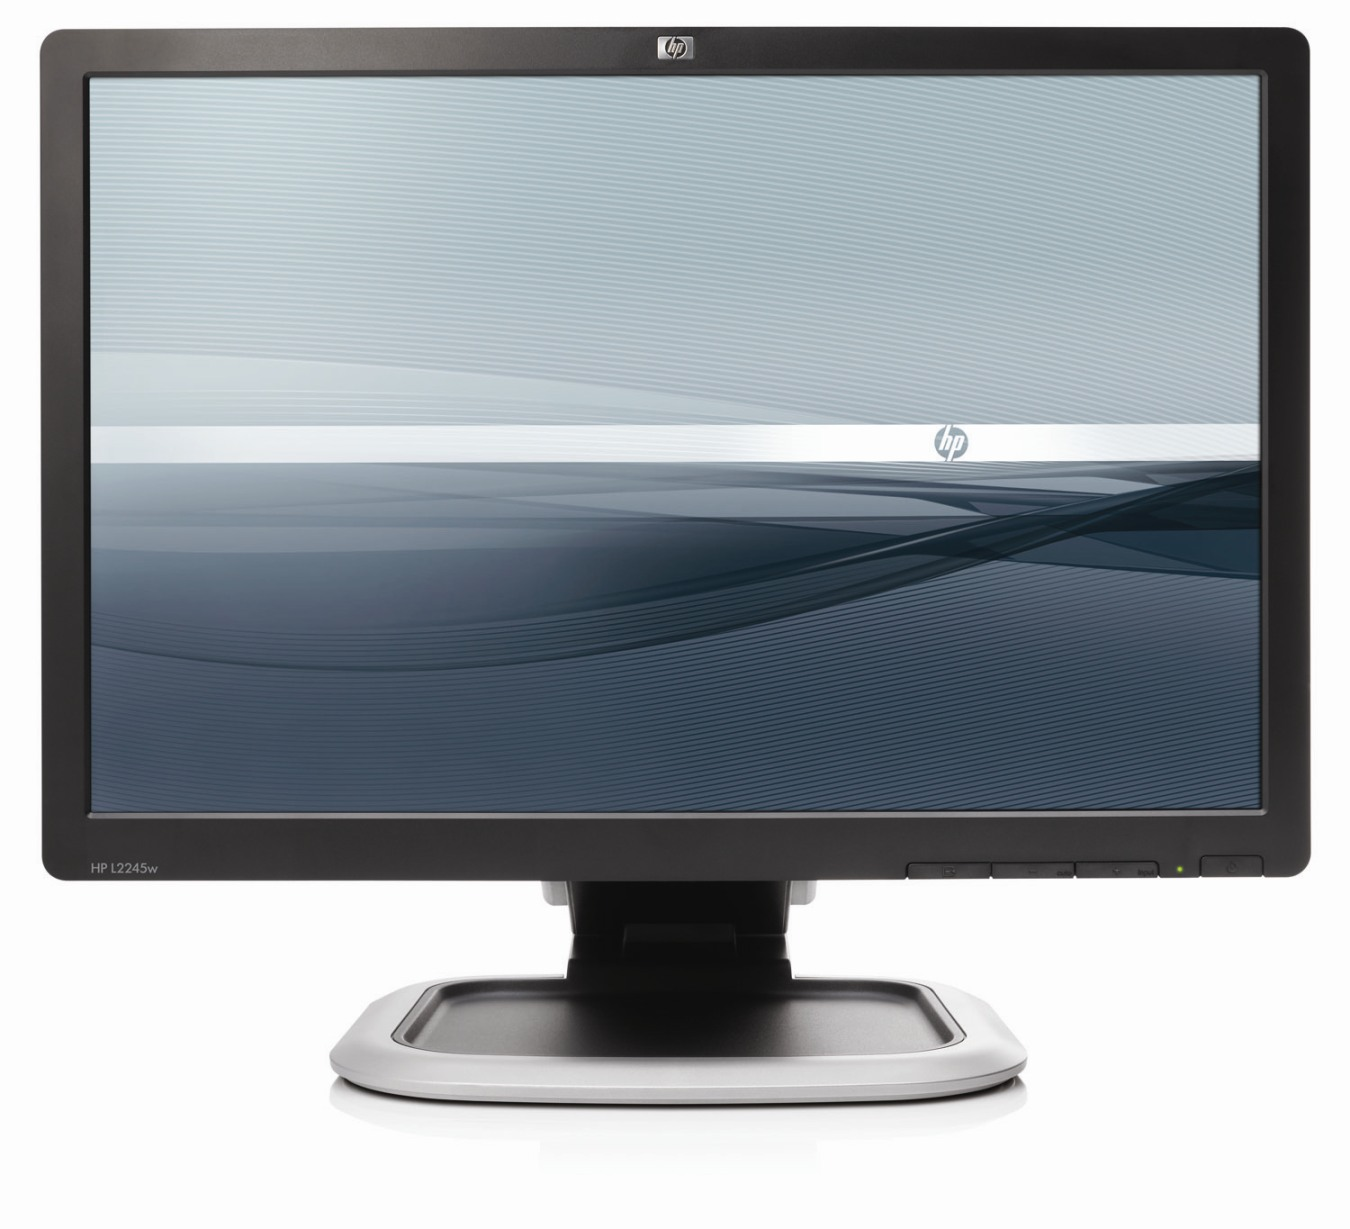 "HP L2245 22"" LCD WIDESCREEN MONITOR DVI-D VGA USB PC ..."